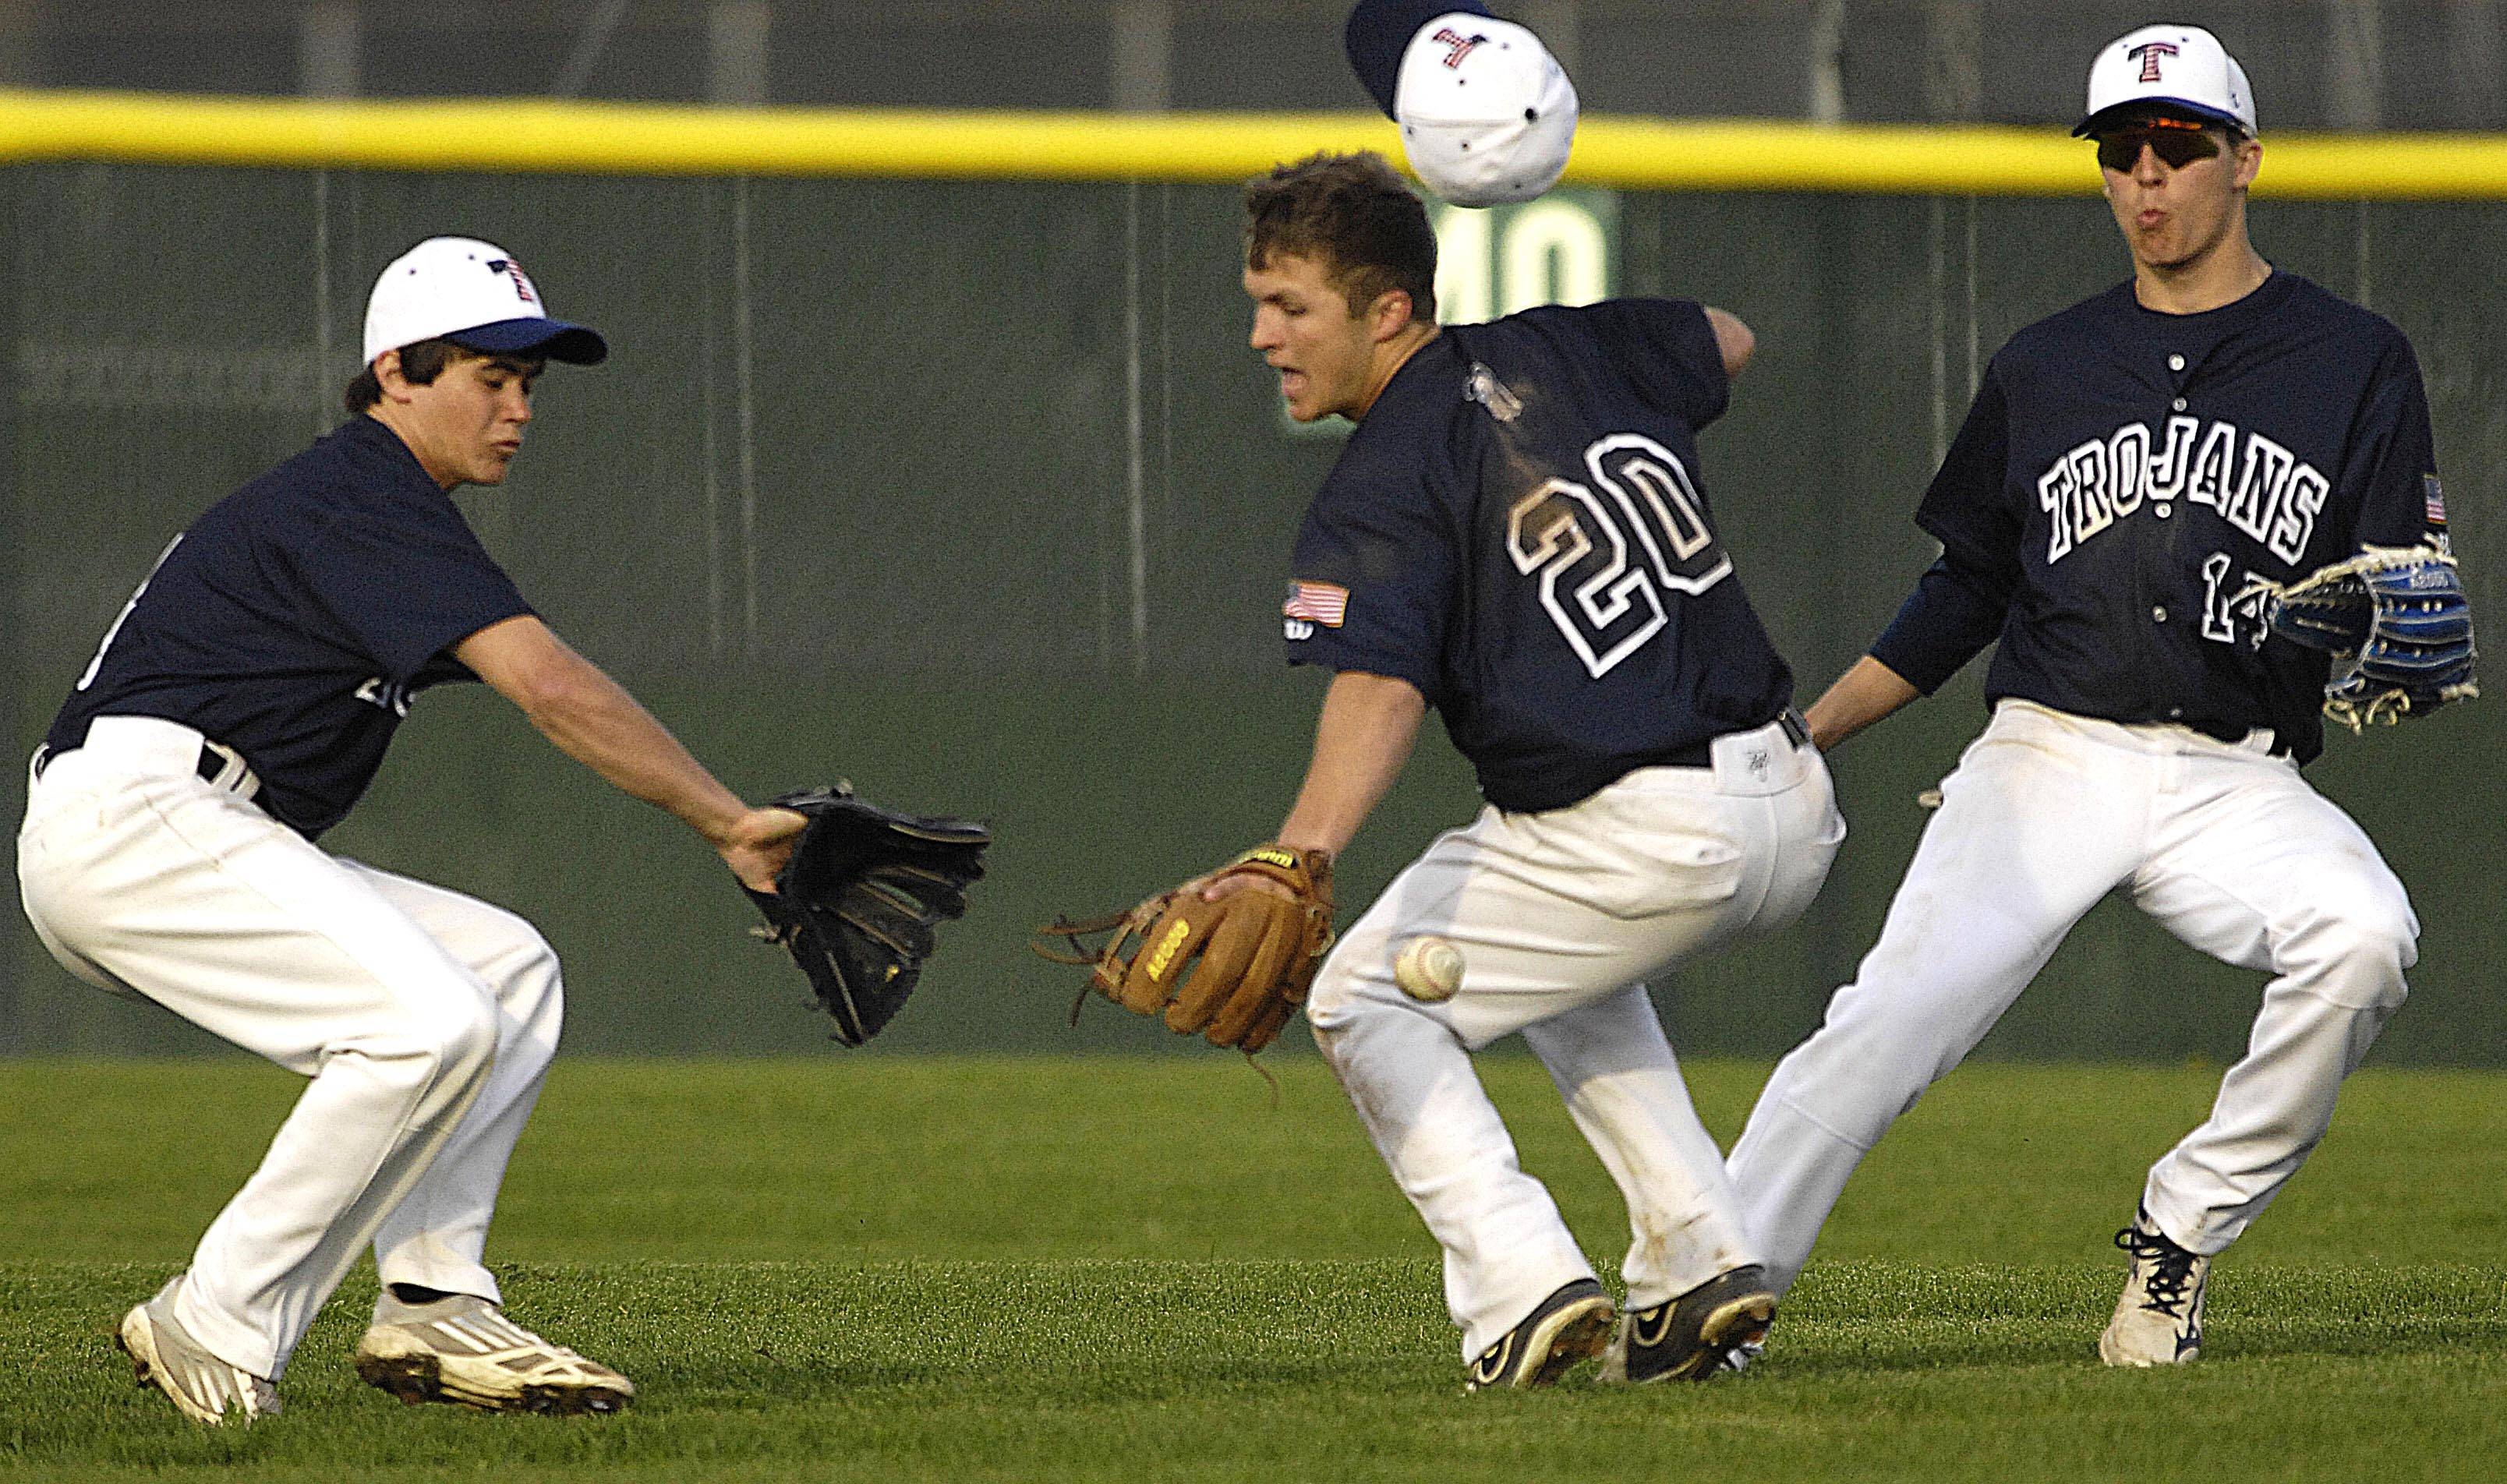 Cary-Grove's Larkin Hanselmann, left, Matt Sutherland, and Jim Perkins converge on a pop up that dropped in short center field off the bat of Dundee-Crown's Brett Johnson in the sixth inning Wednesday in Cary.